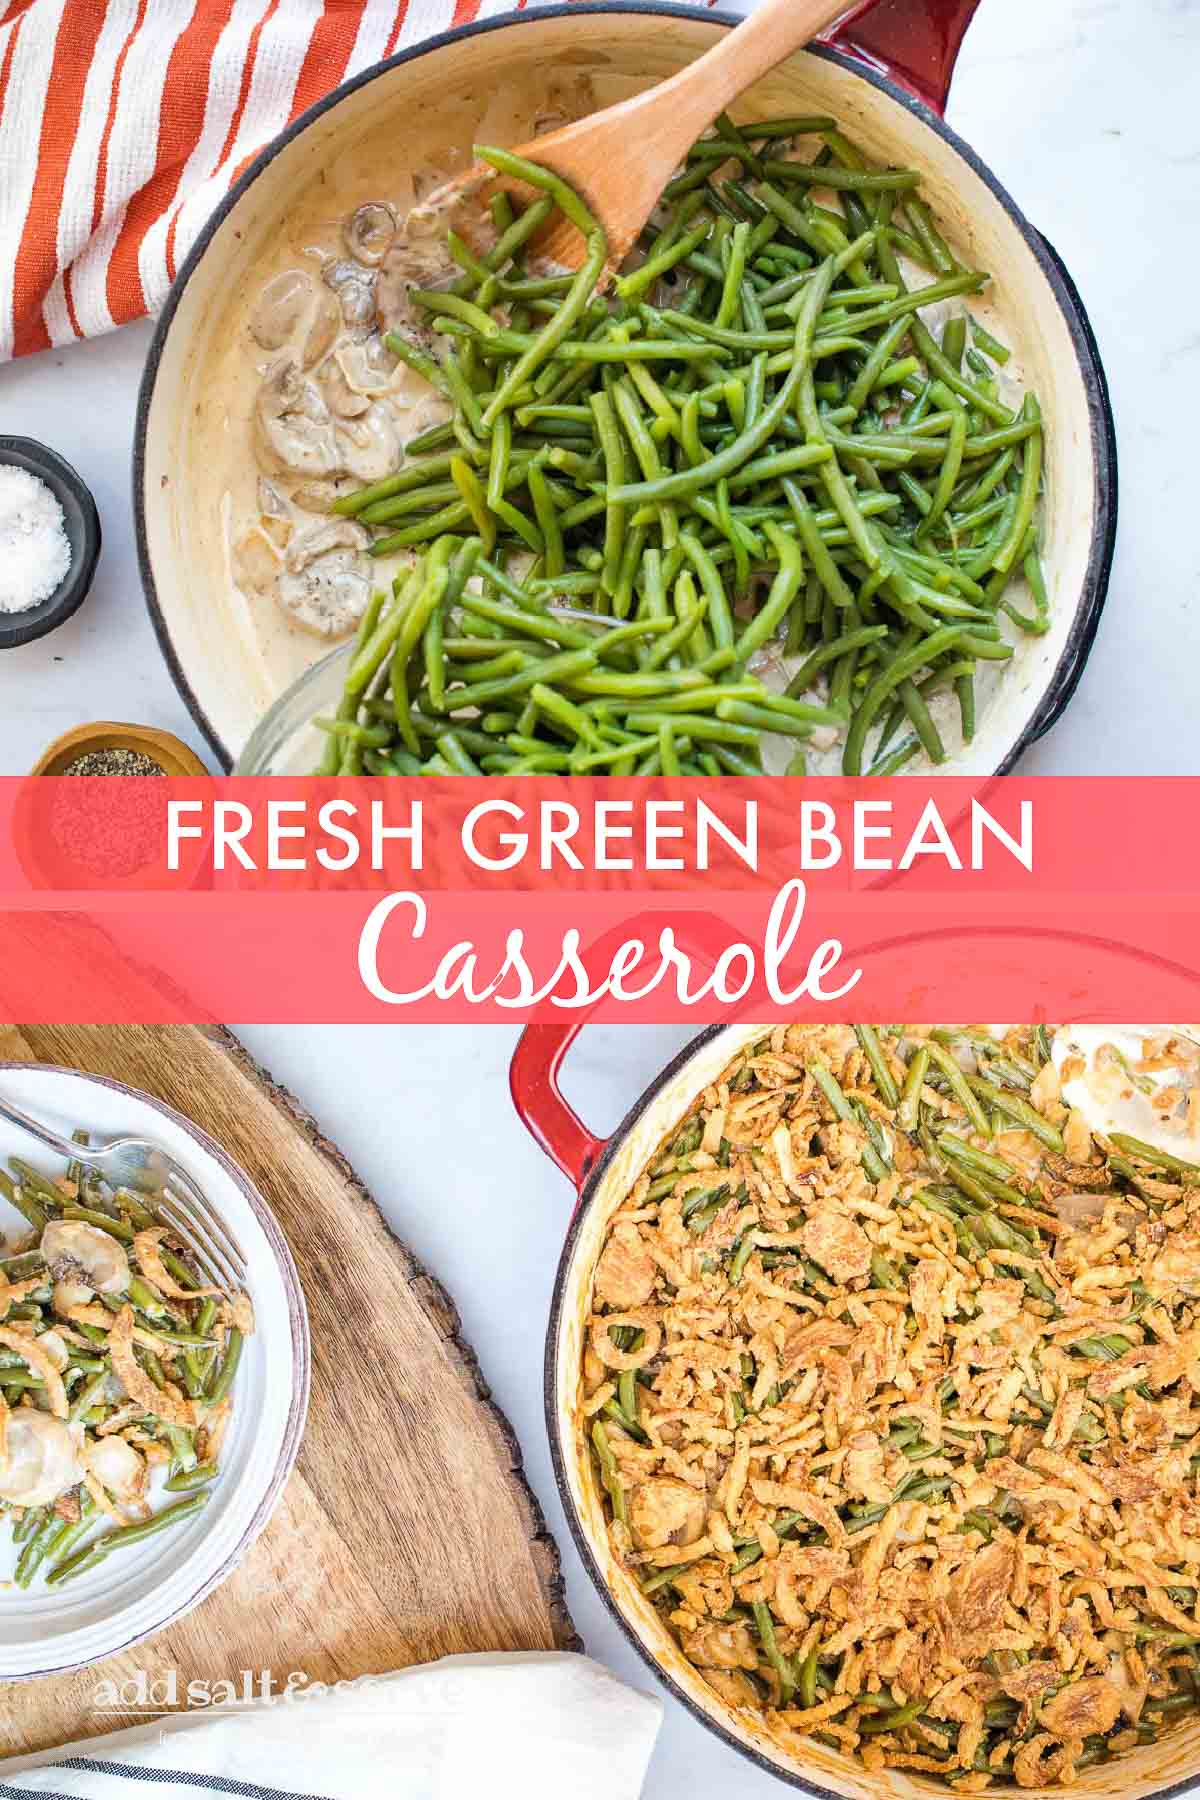 Fresh green beans in one skillet and green bean casserole in a second skillet